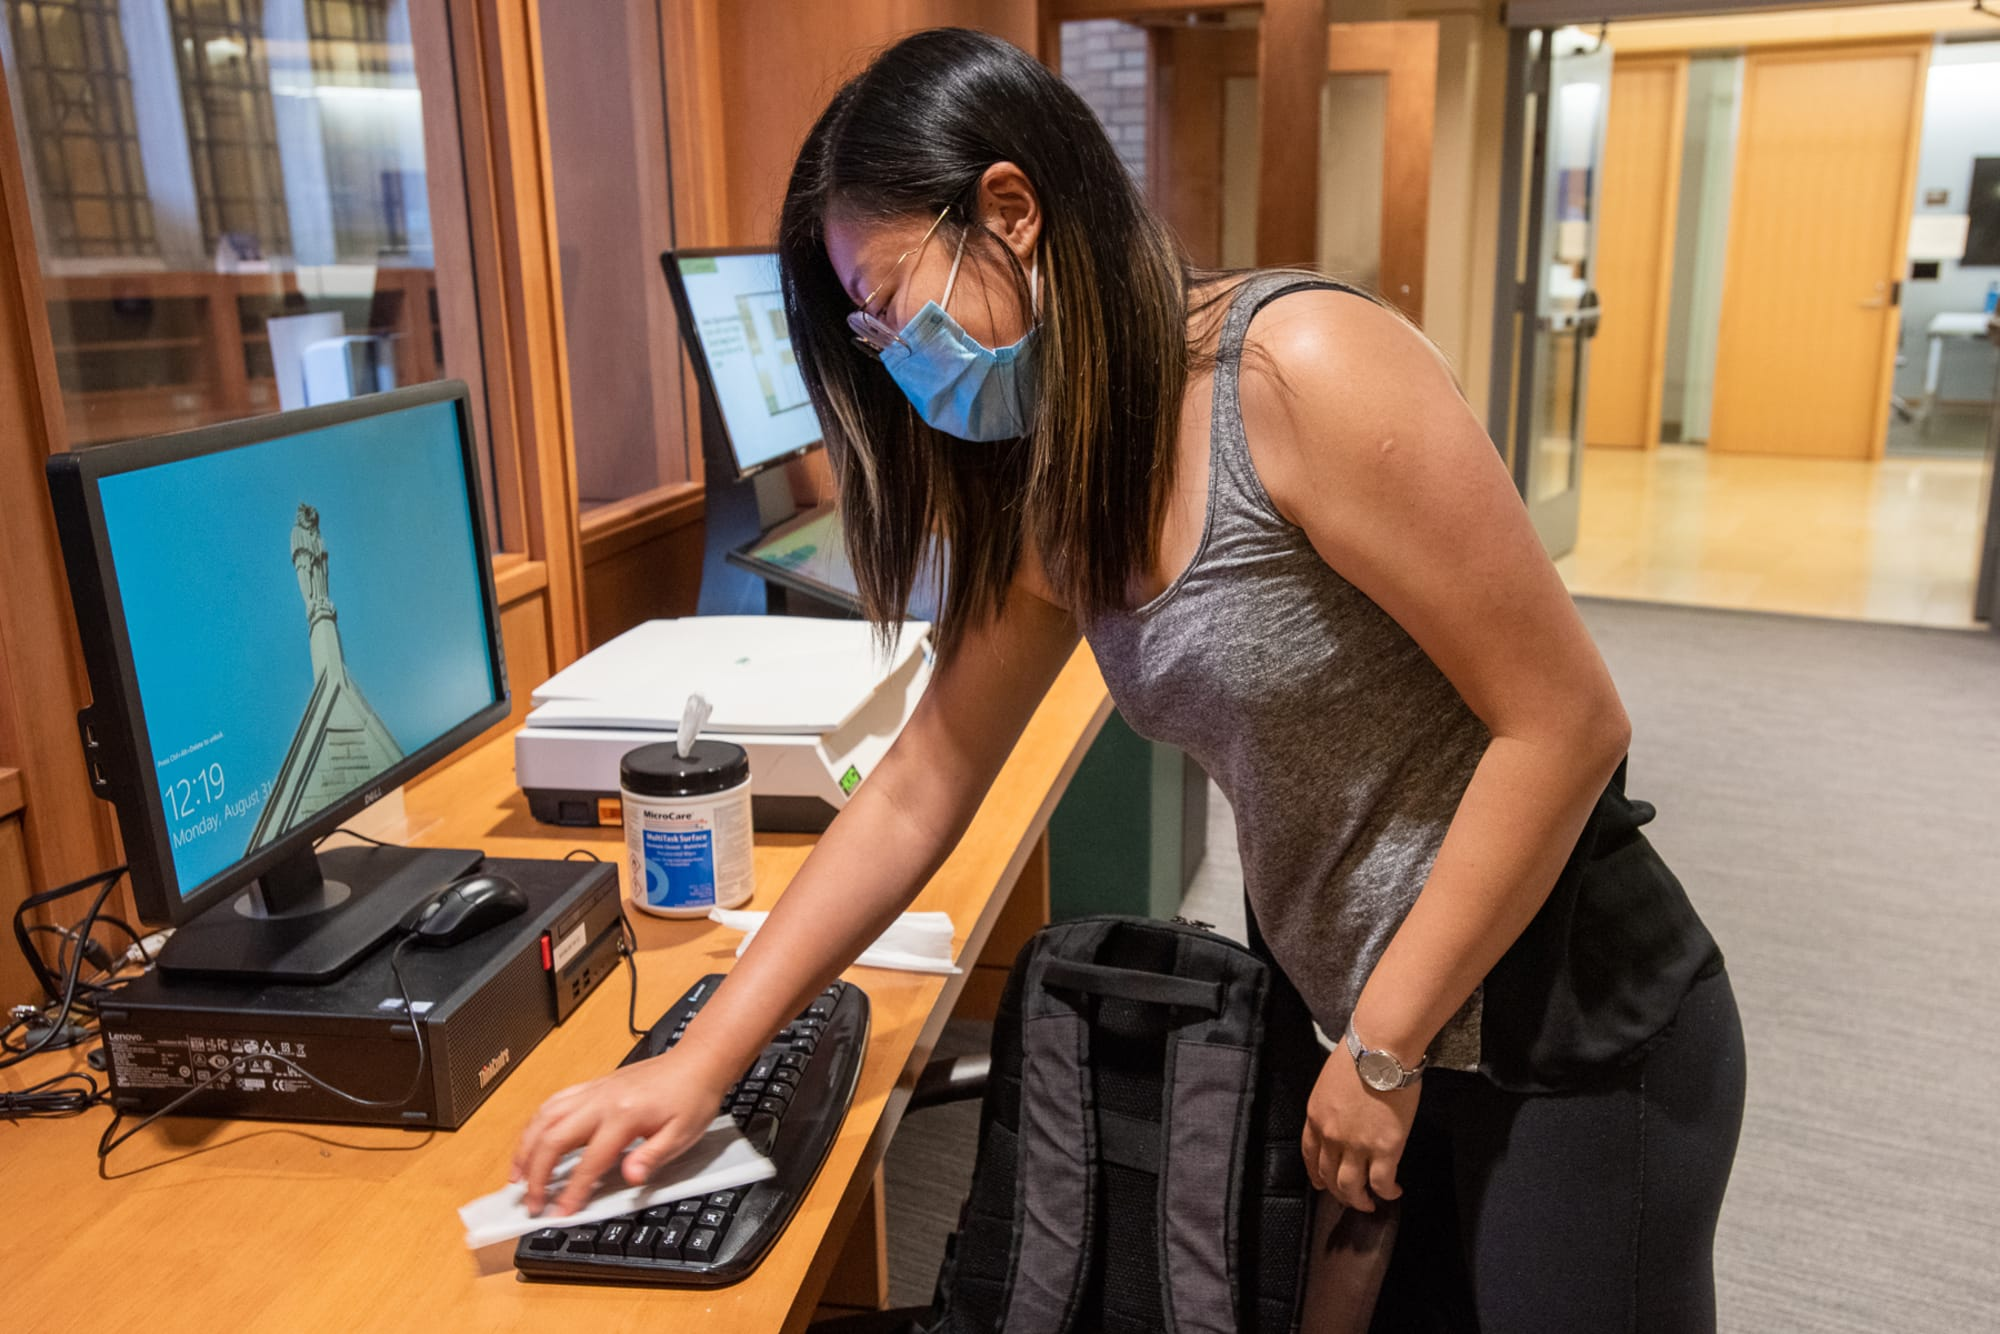 Woman cleans computer keyboard with wipes in Bass Library.